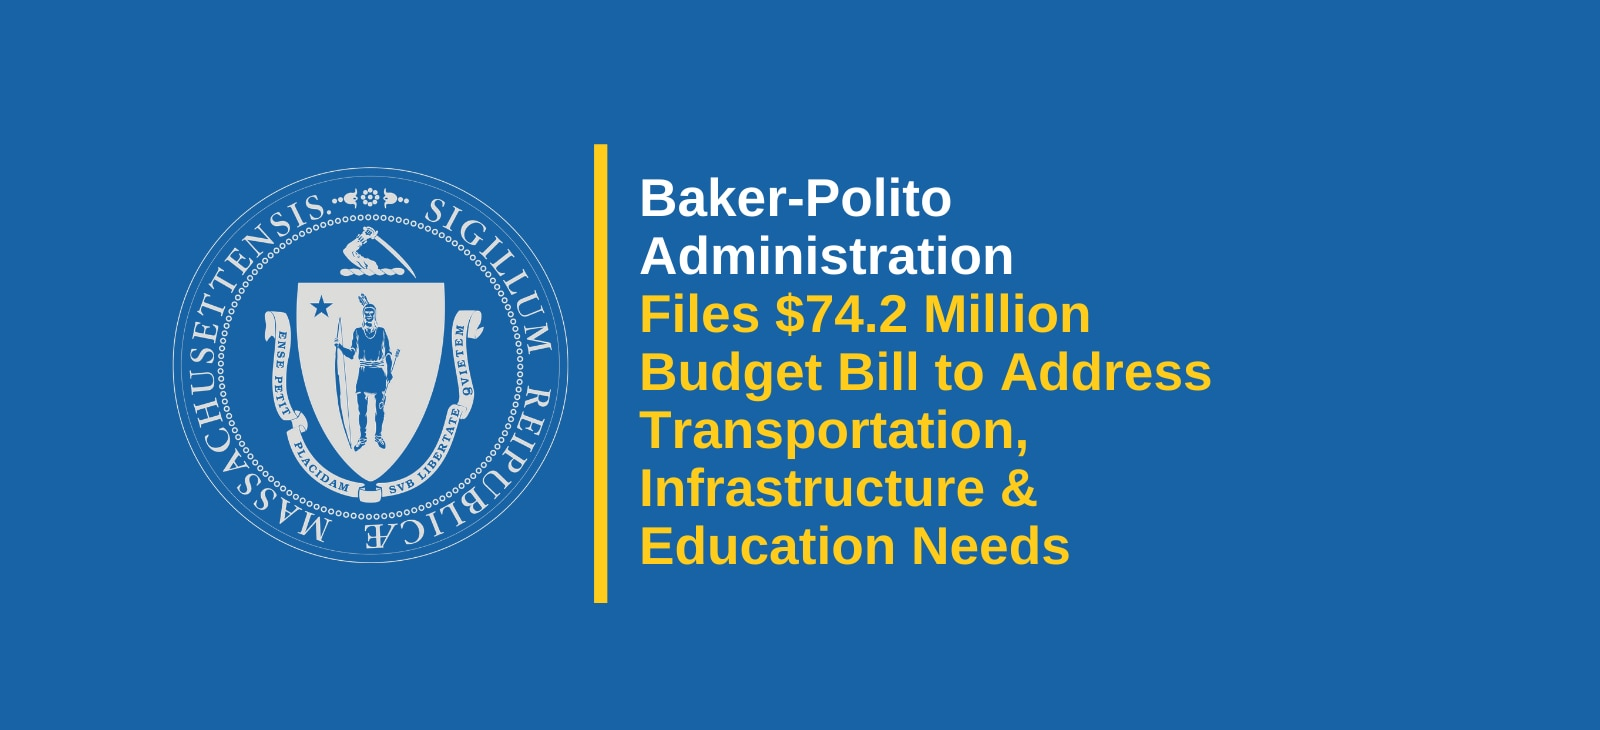 Baker-Polito Administration Files $74.2 Million Budget Bill to Address Transportation, Infrastructure & Education Needs